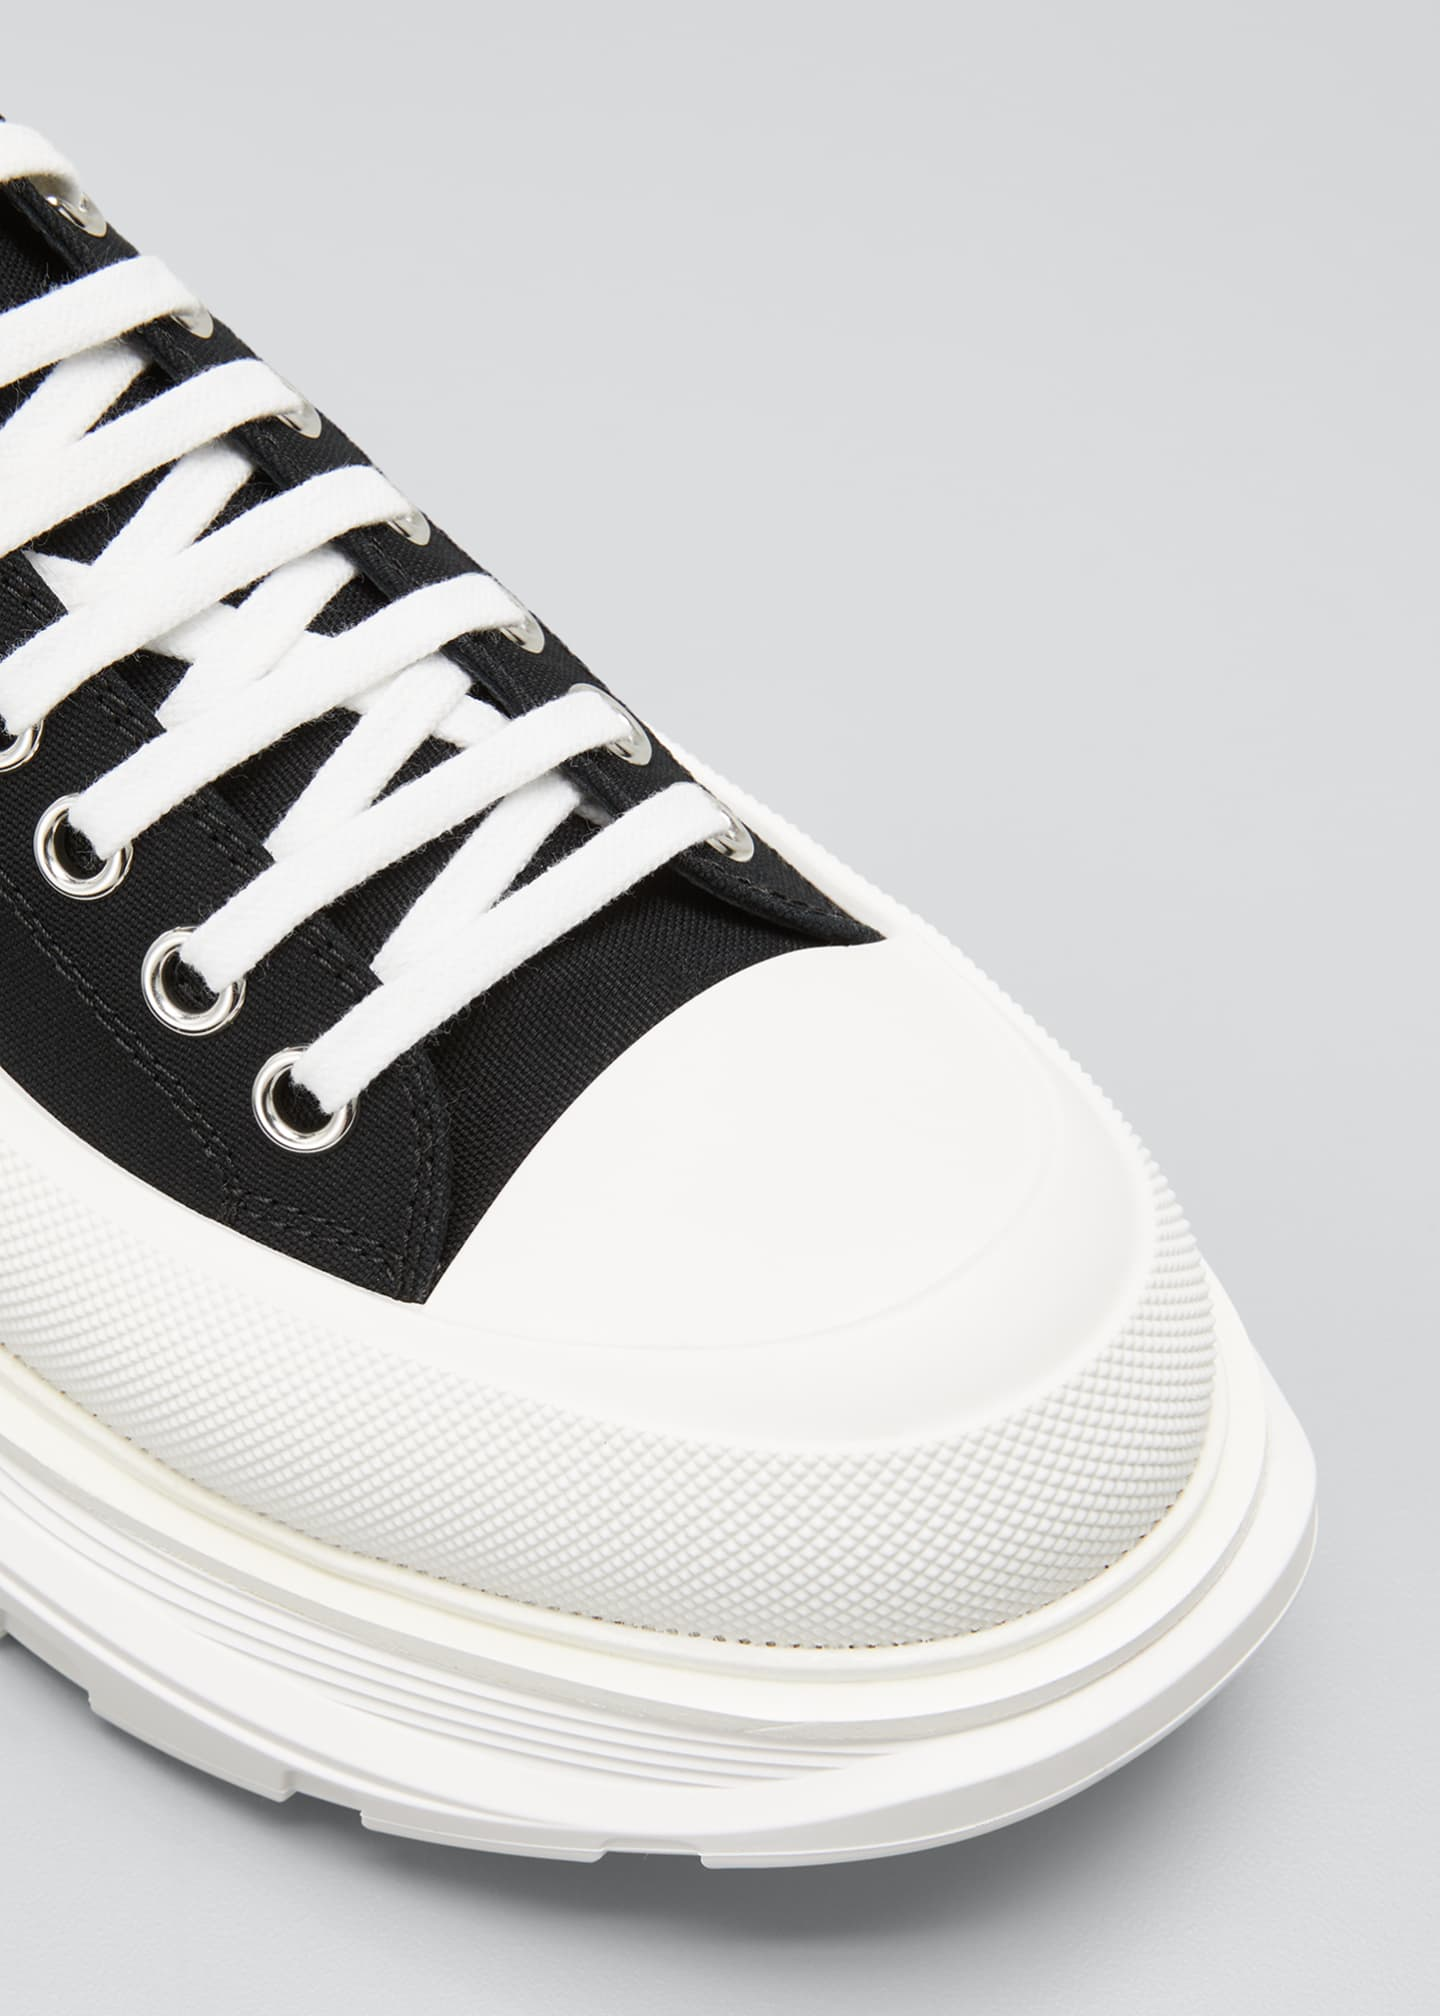 Image 4 of 4: Men's Two-Tone Fabric Sneakers